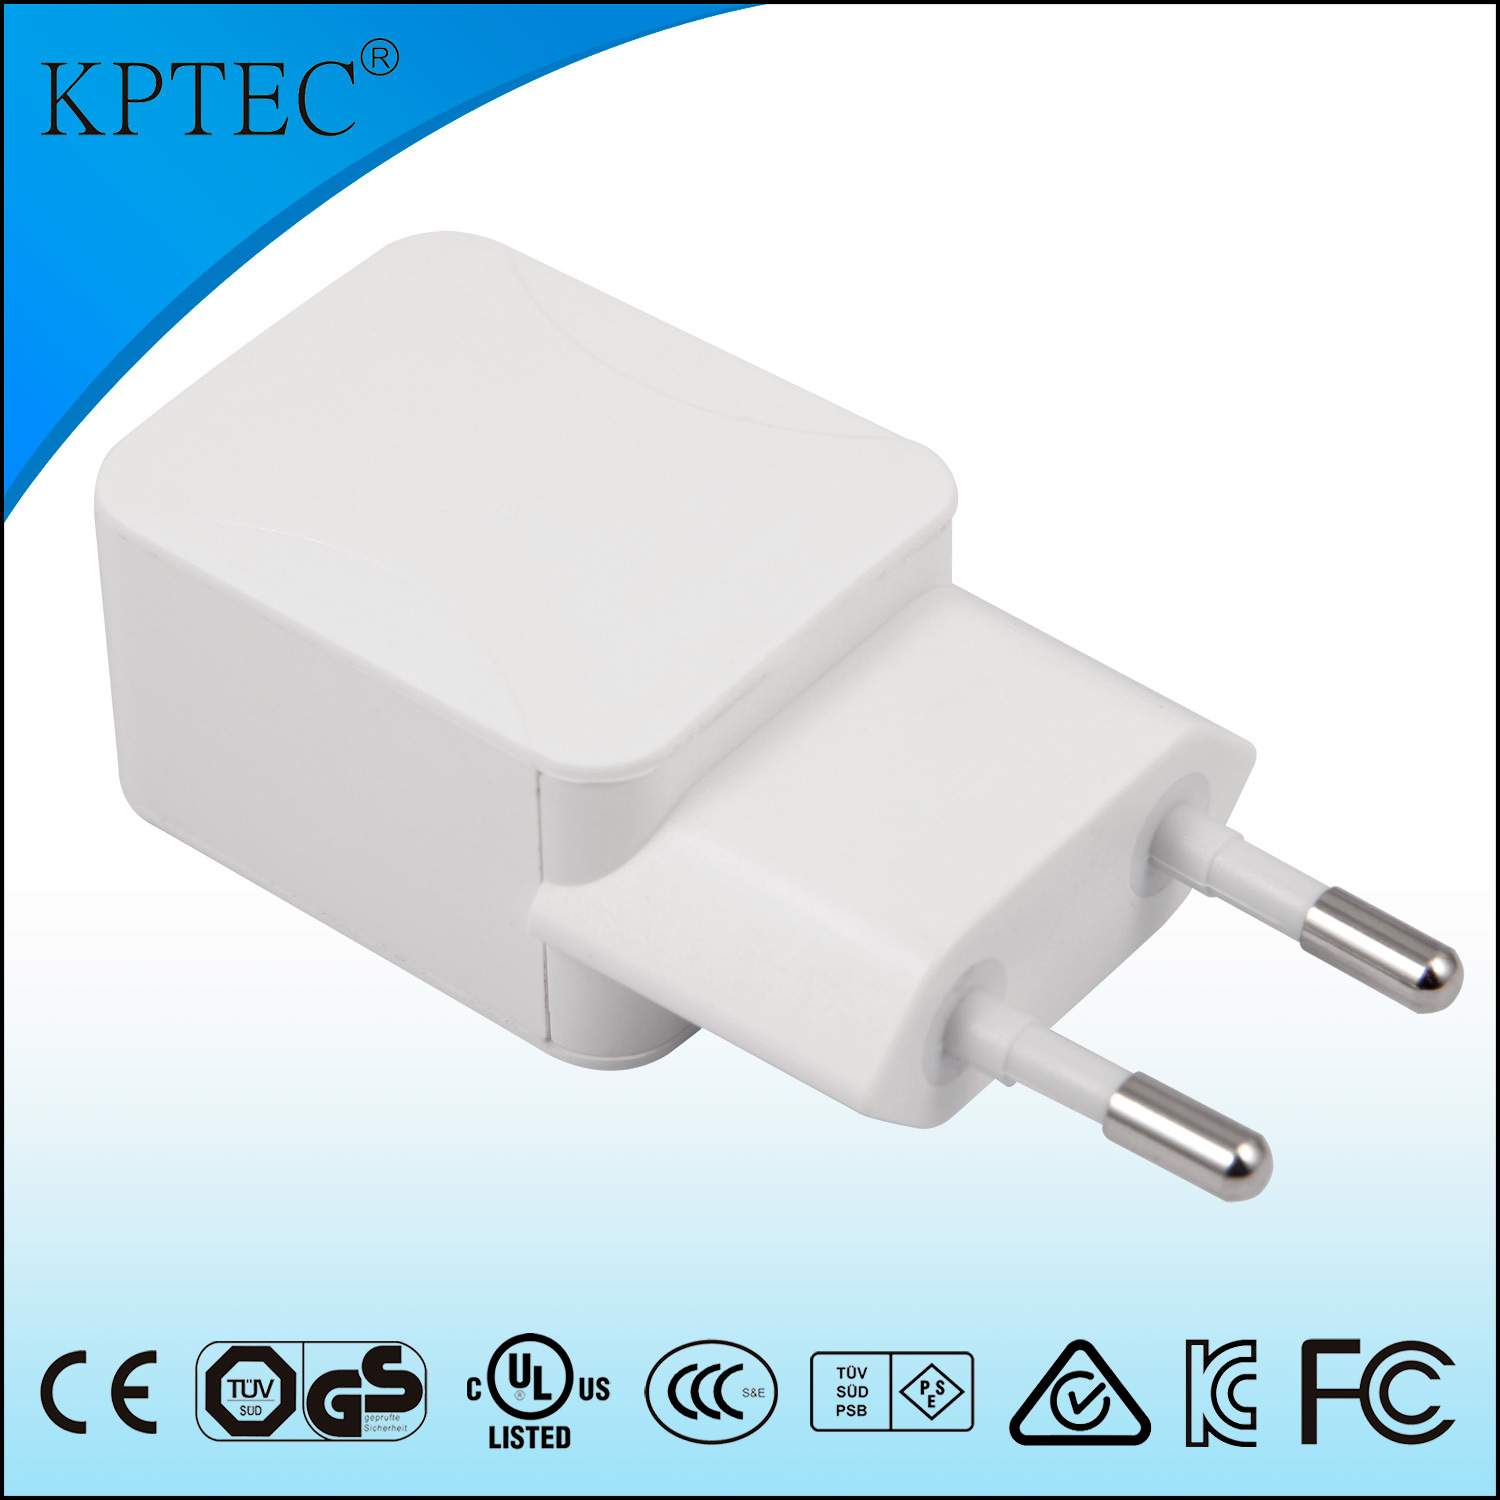 5V 1A AC/DC Adapter with Ce and RoHS Reach EU Plug